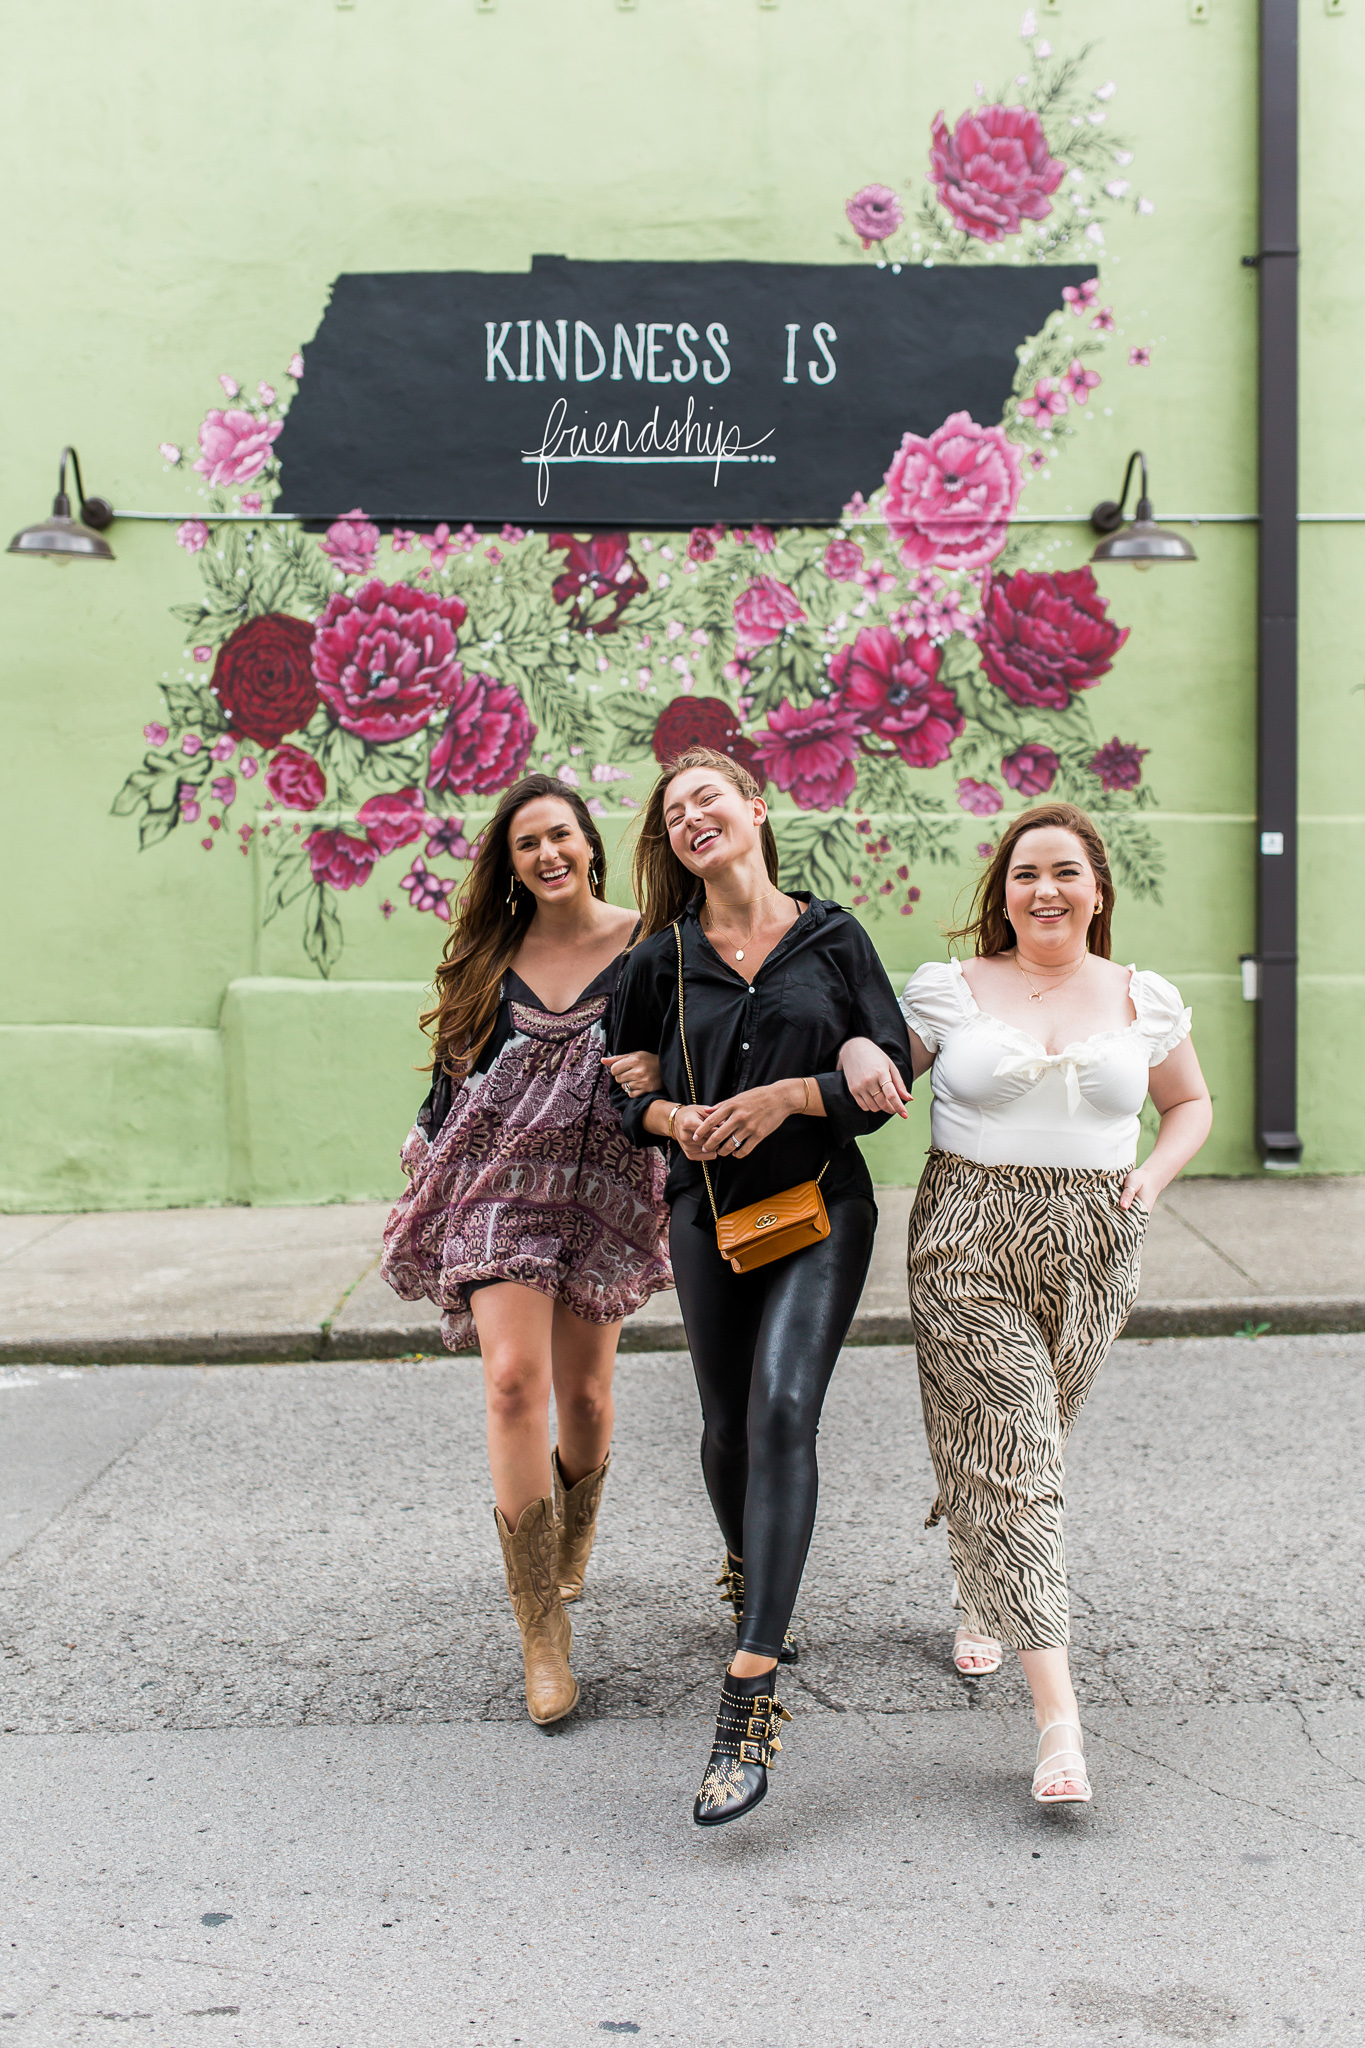 Kindness Is Mural - 1120 4th Ave N Nashville, TN 37208